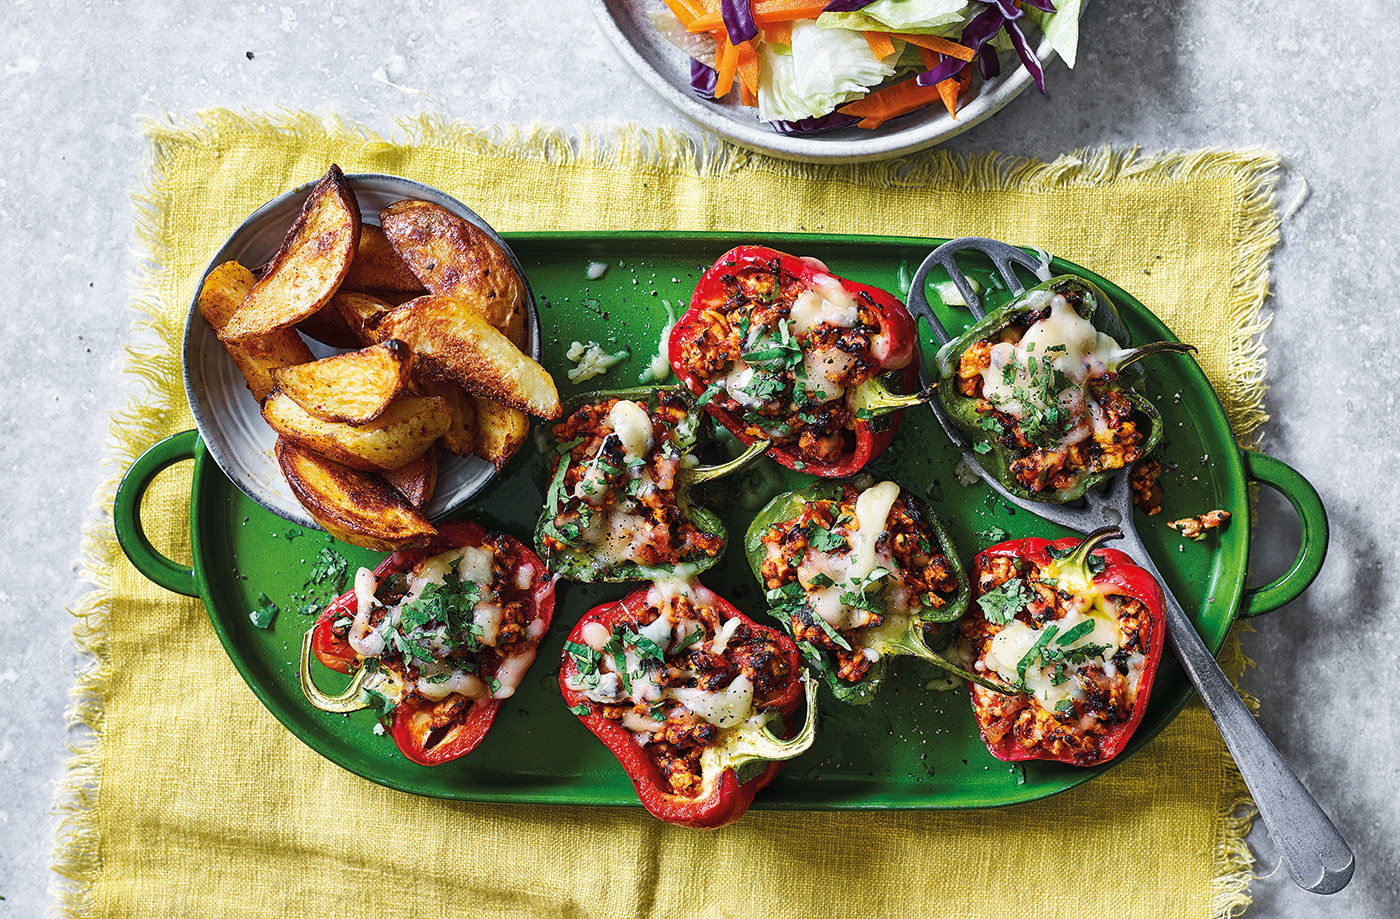 Sloppy-joe stuffed peppers with wedges recipe